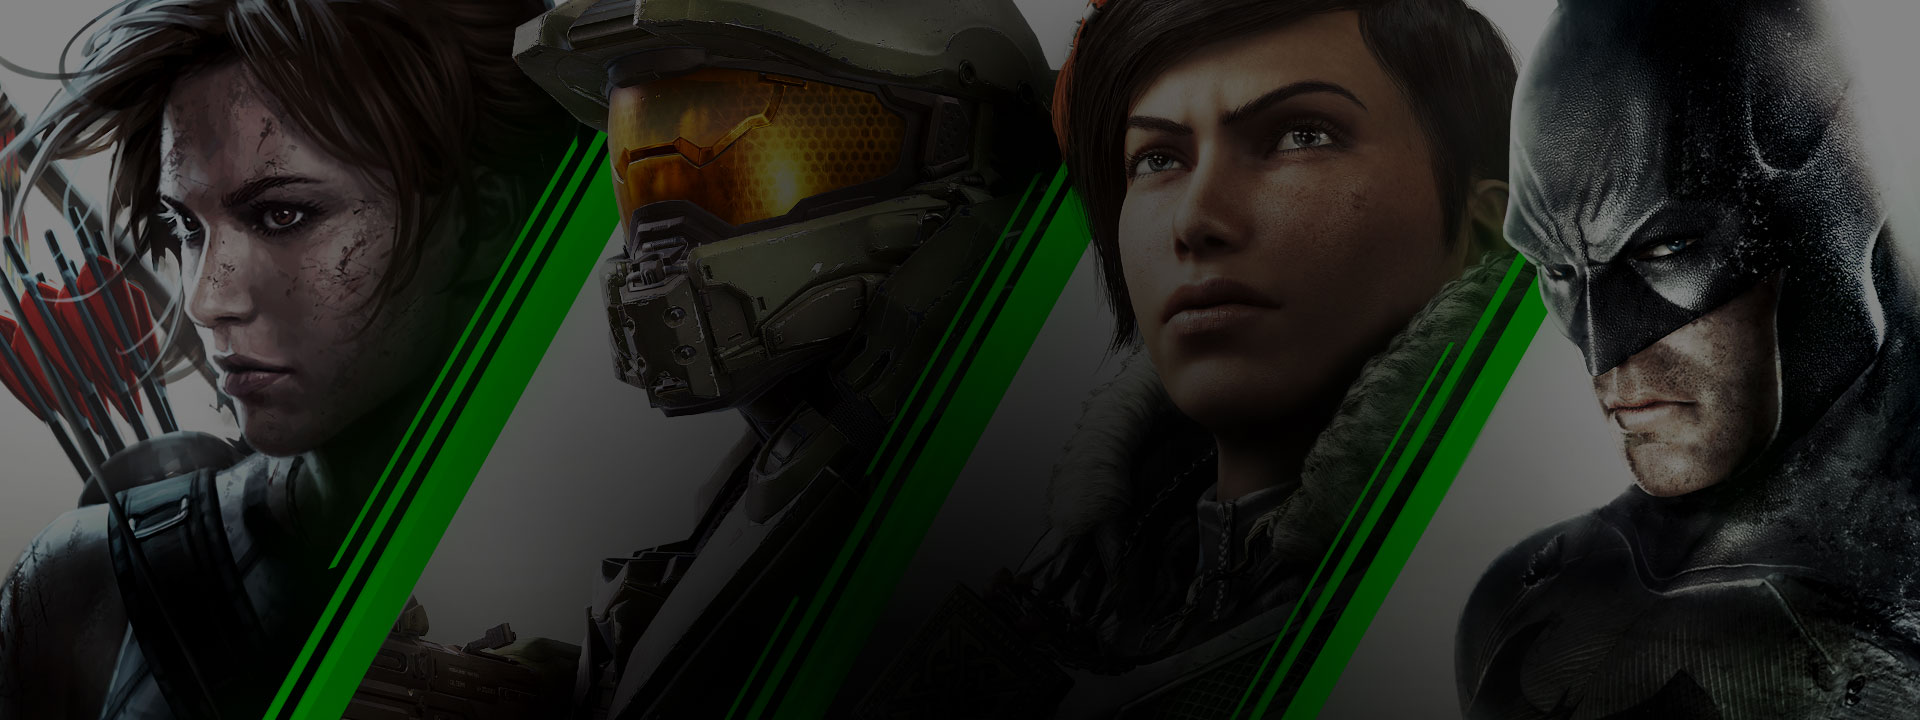 Un collage de personnages de jeux Xbox One. Lara Croft, Master Chief, Kait Diaz et Batman.